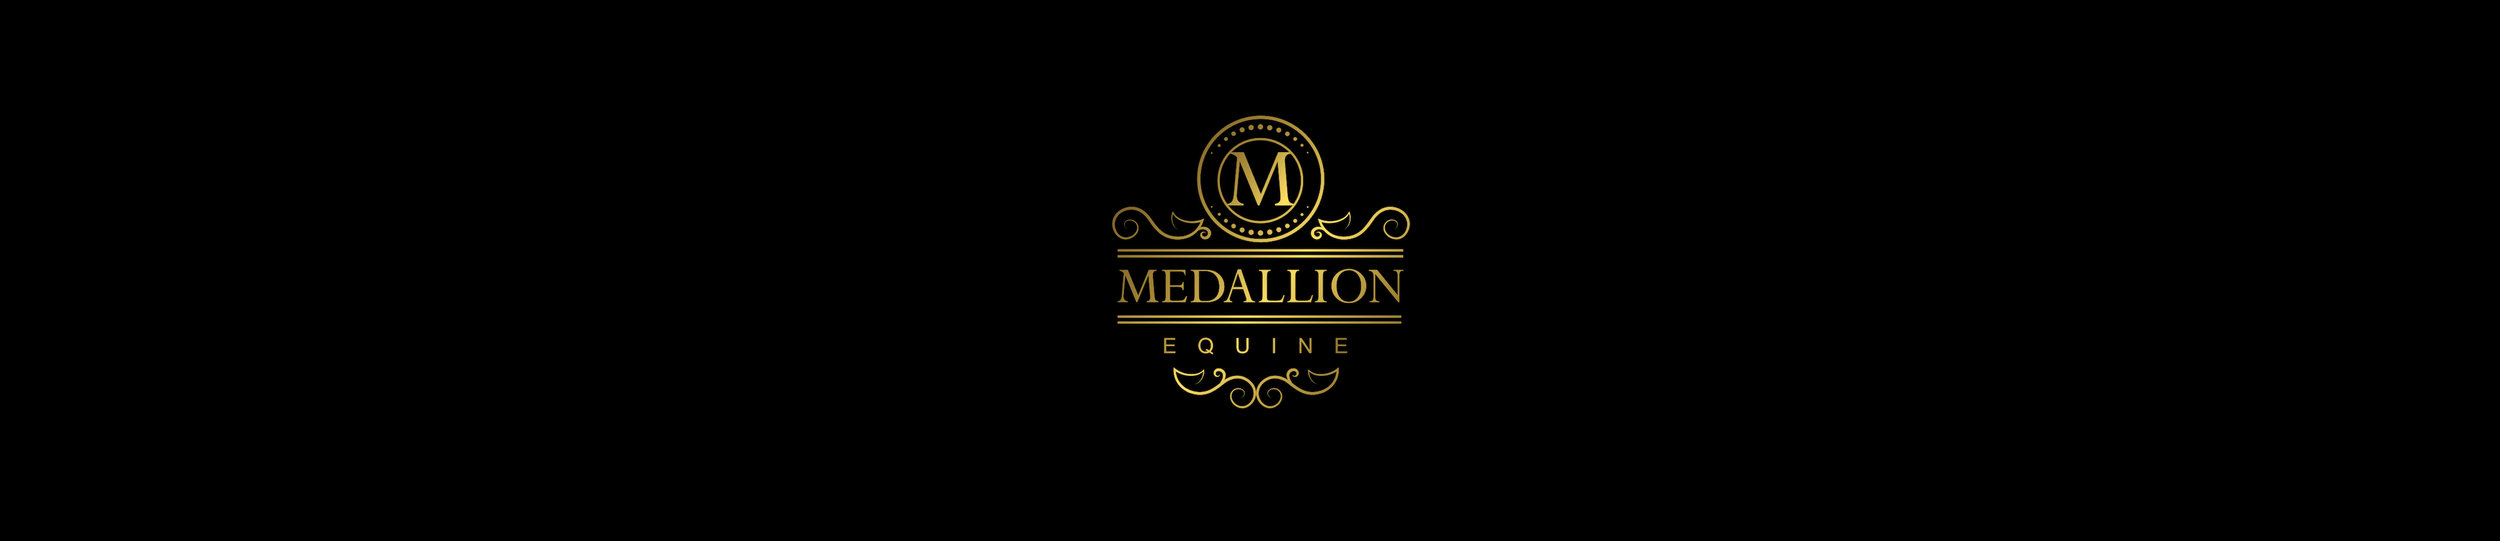 MEDALLION_titles_for review page_small.jpg